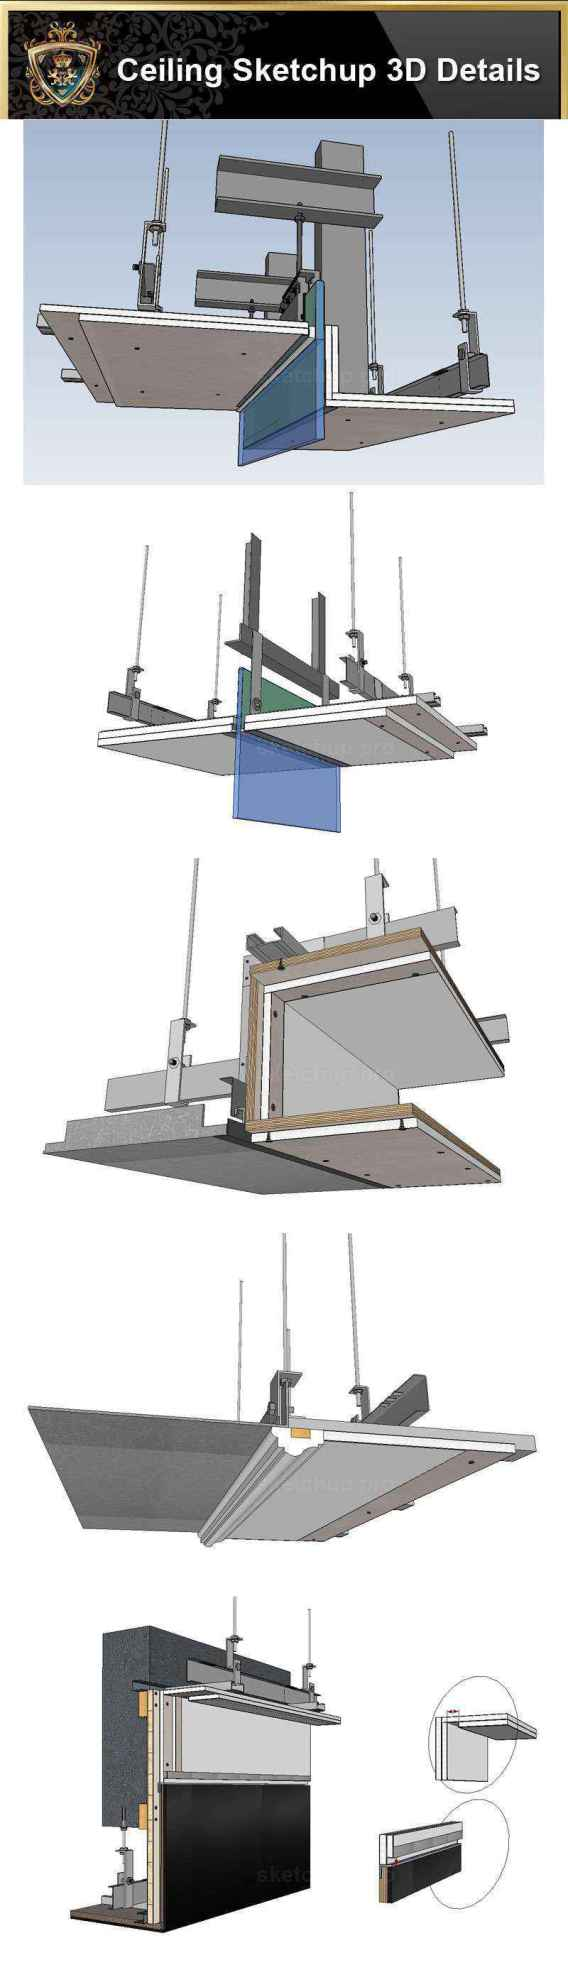 Sketchup Ceiling Details-28 soft film is connected with gypsum board .skp Sketchup Ceiling Details-28 top aluminum plate expansion joint practice .skp Sketchup Ceiling Details-29 plasterboard facing blockboard base layer .skp Sketchup Ceiling Details-29 plasterboard facing blockboard base layer.skp Sketchup Ceiling Details-30 curtain box and glass curtain wall closing node .skp Sketchup Ceiling Details-30 curtain box and glass curtain wall closing node.skp Sketchup Ceiling Details-31 curtain box and aluminum buckle board closing node .skp Sketchup Ceiling Details-31 curtain box and aluminum buckle board closing node.skp Sketchup Ceiling Details-32 hidden lamp with curtain box node .skp Sketchup Ceiling Details-32 hidden lamp with curtain box node.skp Sketchup Ceiling Details-33 finished aluminum edge inspection port reinforcement node details .skp Sketchup Ceiling Details-33 white soft film is connected with wood veneer .skp Sketchup Ceiling Details-34 plasterboard is connected to the steel cylinder .skp Sketchup Ceiling Details-34 wood veneer is connected with steel cylinder .skp Sketchup Ceiling Details-35 wood veneer is connected to the tea mirror .skp Sketchup Ceiling Details-35 wood veneer is connected with the tea mirror .skp